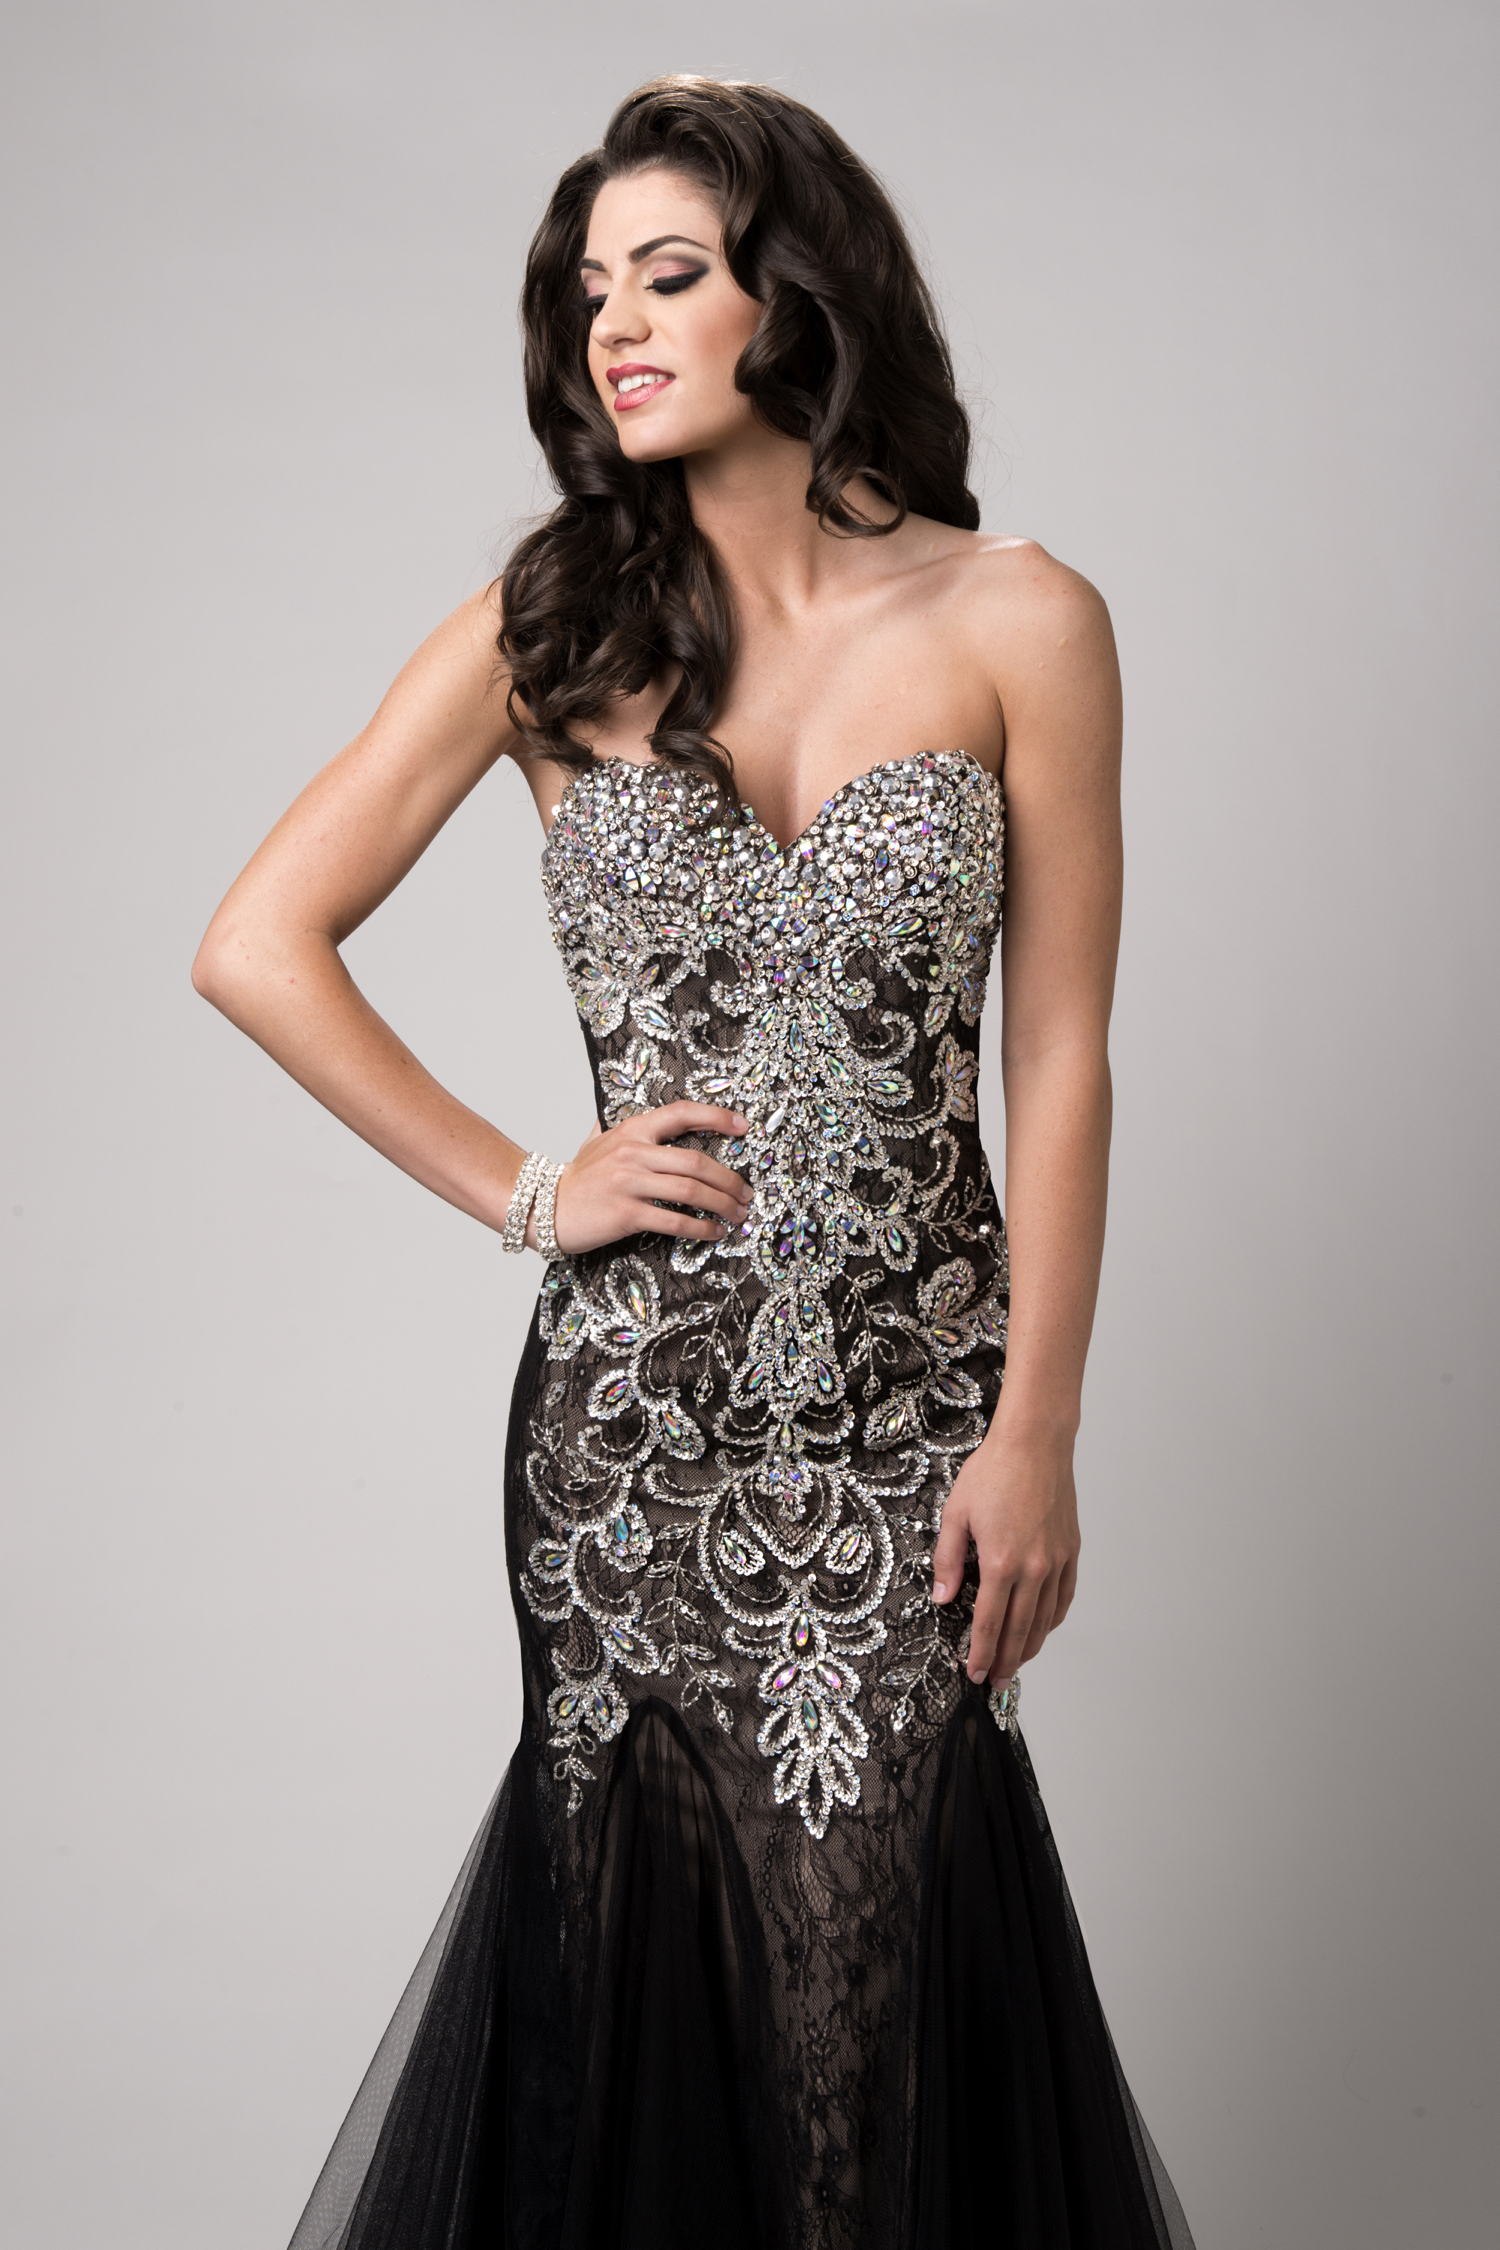 Prom Dresses Near Greensburg Pa - Homecoming Party Dresses